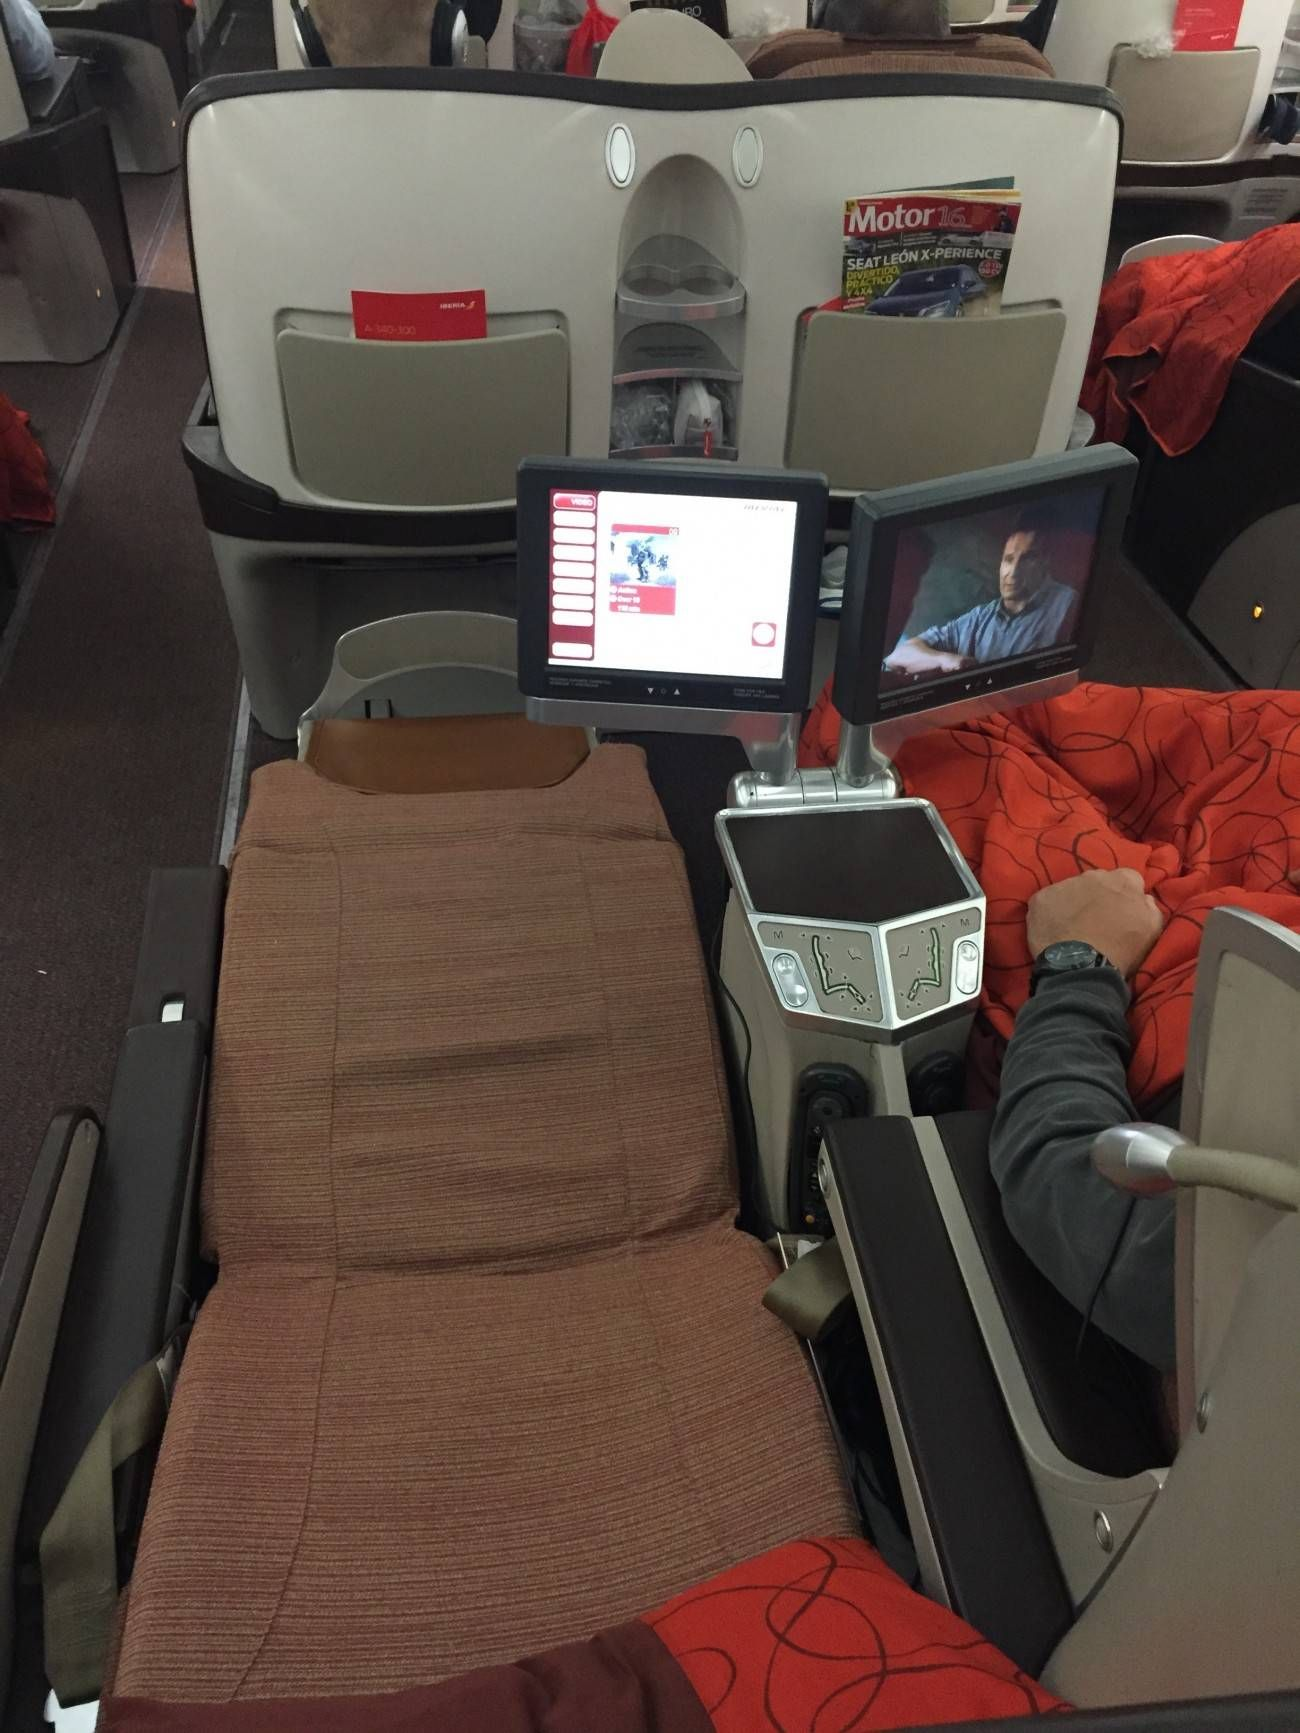 iberia a340-300 business class casse executiva passageirodeprimeira